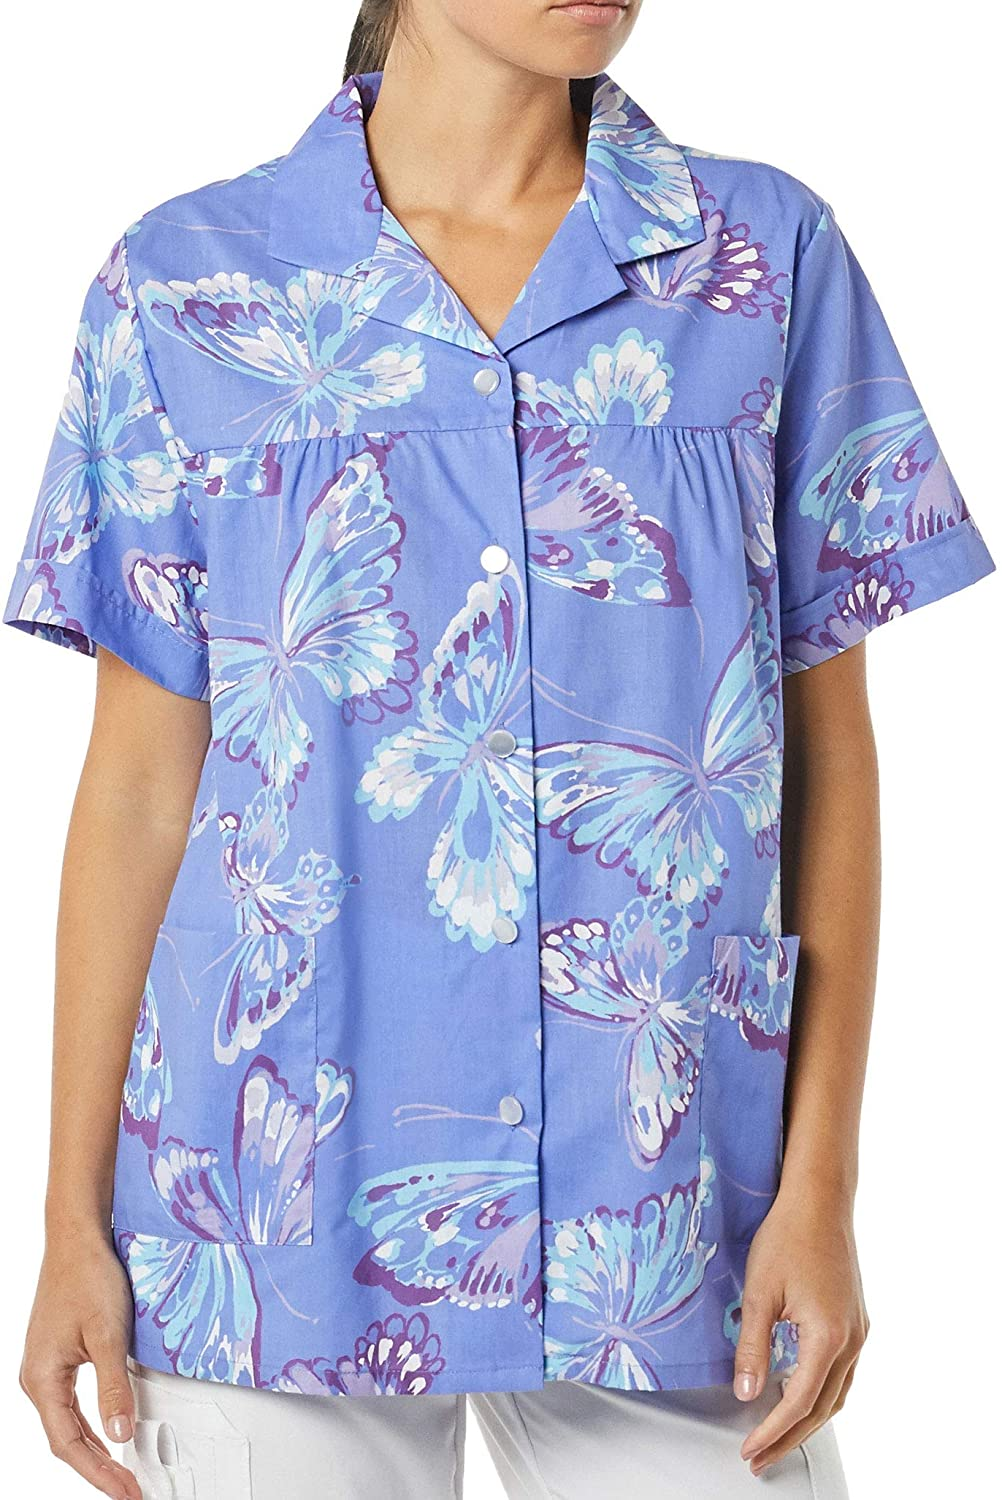 AmeriMark Women's Button Front Smock – Casual Button-Down Shirt w/Patch Pockets